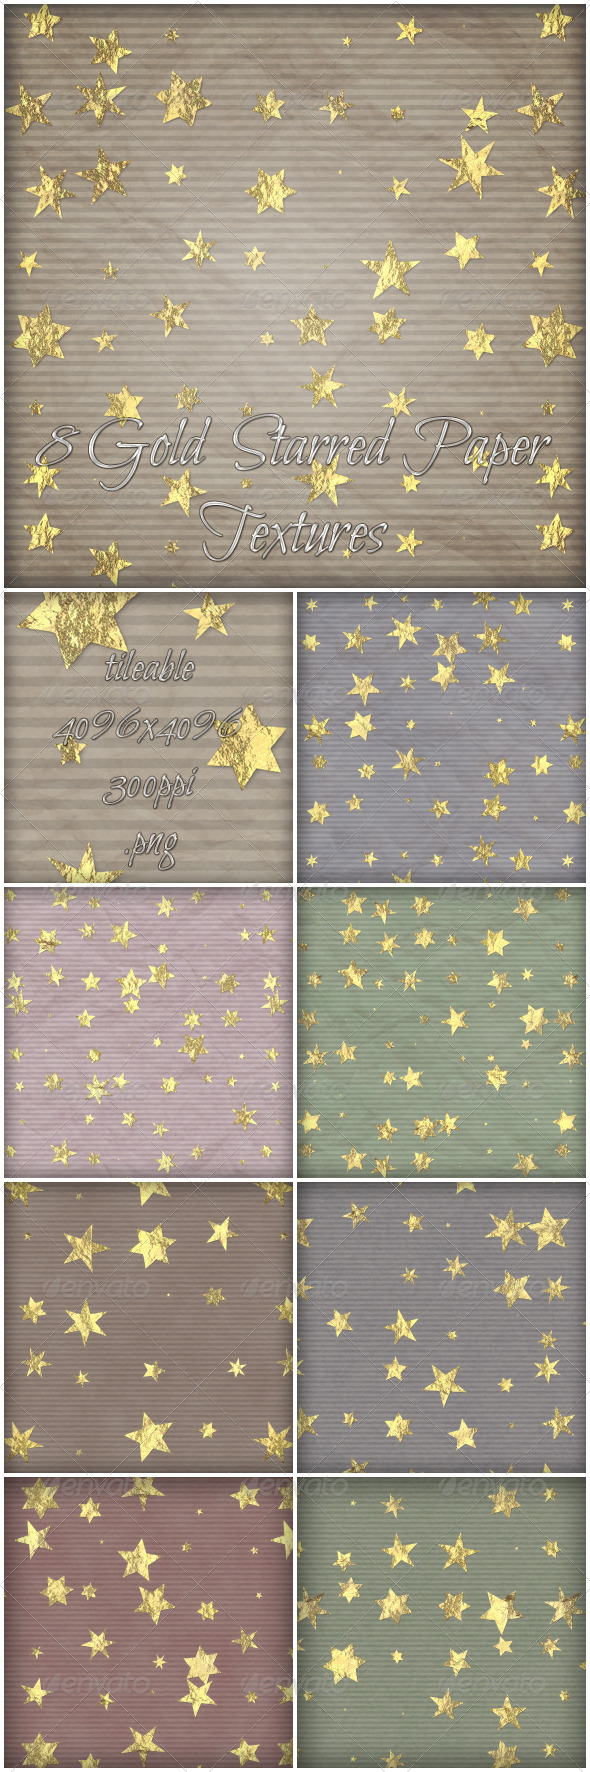 8 Gold starred Paper Textures - Paper Textures